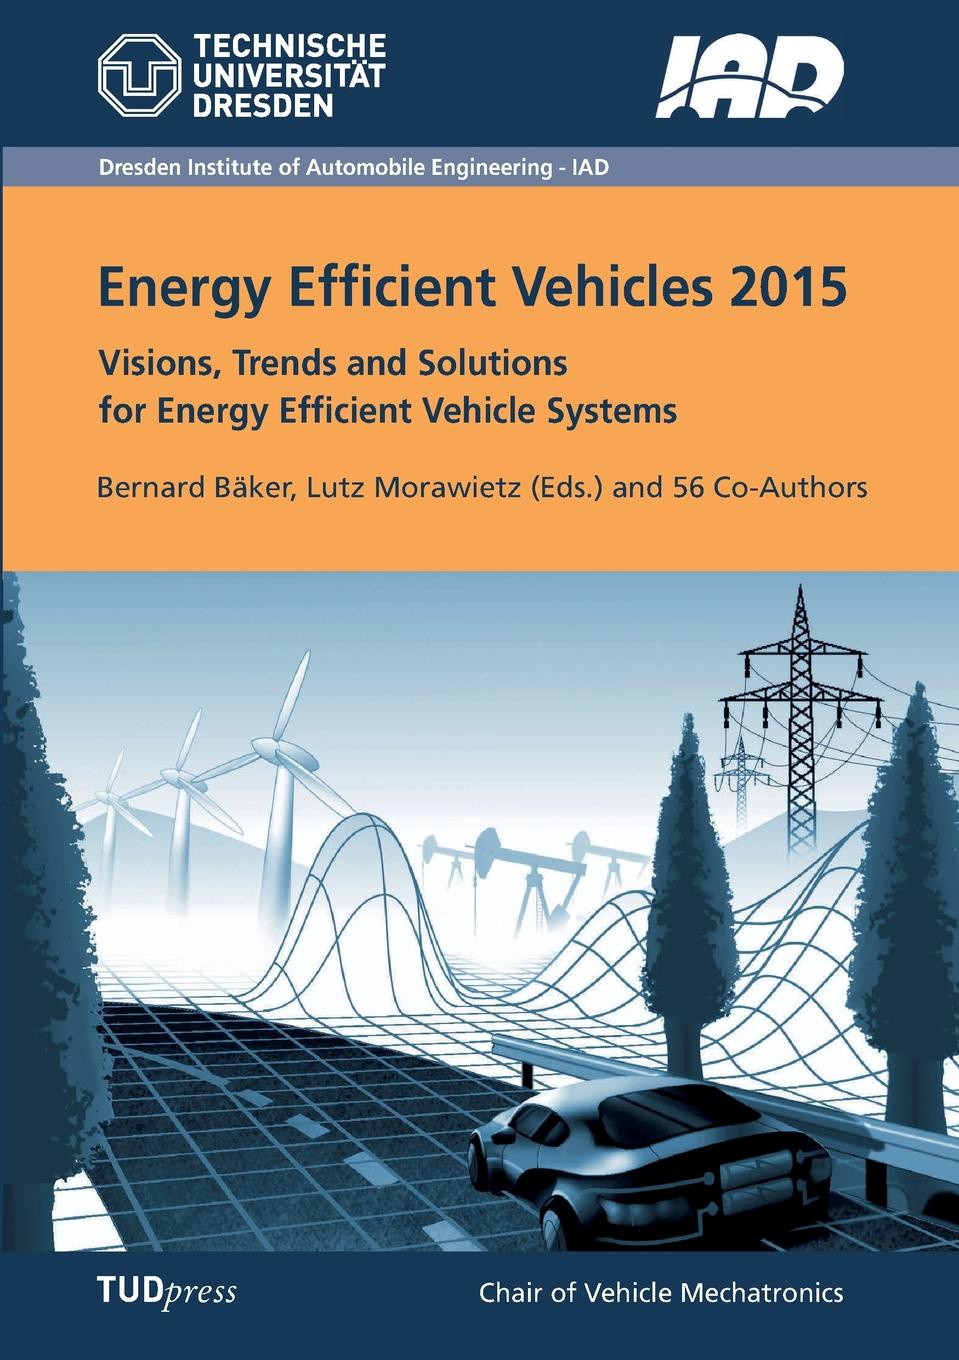 Energy Efficient Vehicles 2015 1 2hp compact condenser chieves of higher seer seasonal energy efficiency ratio and eer energy efficiency ratio ratings